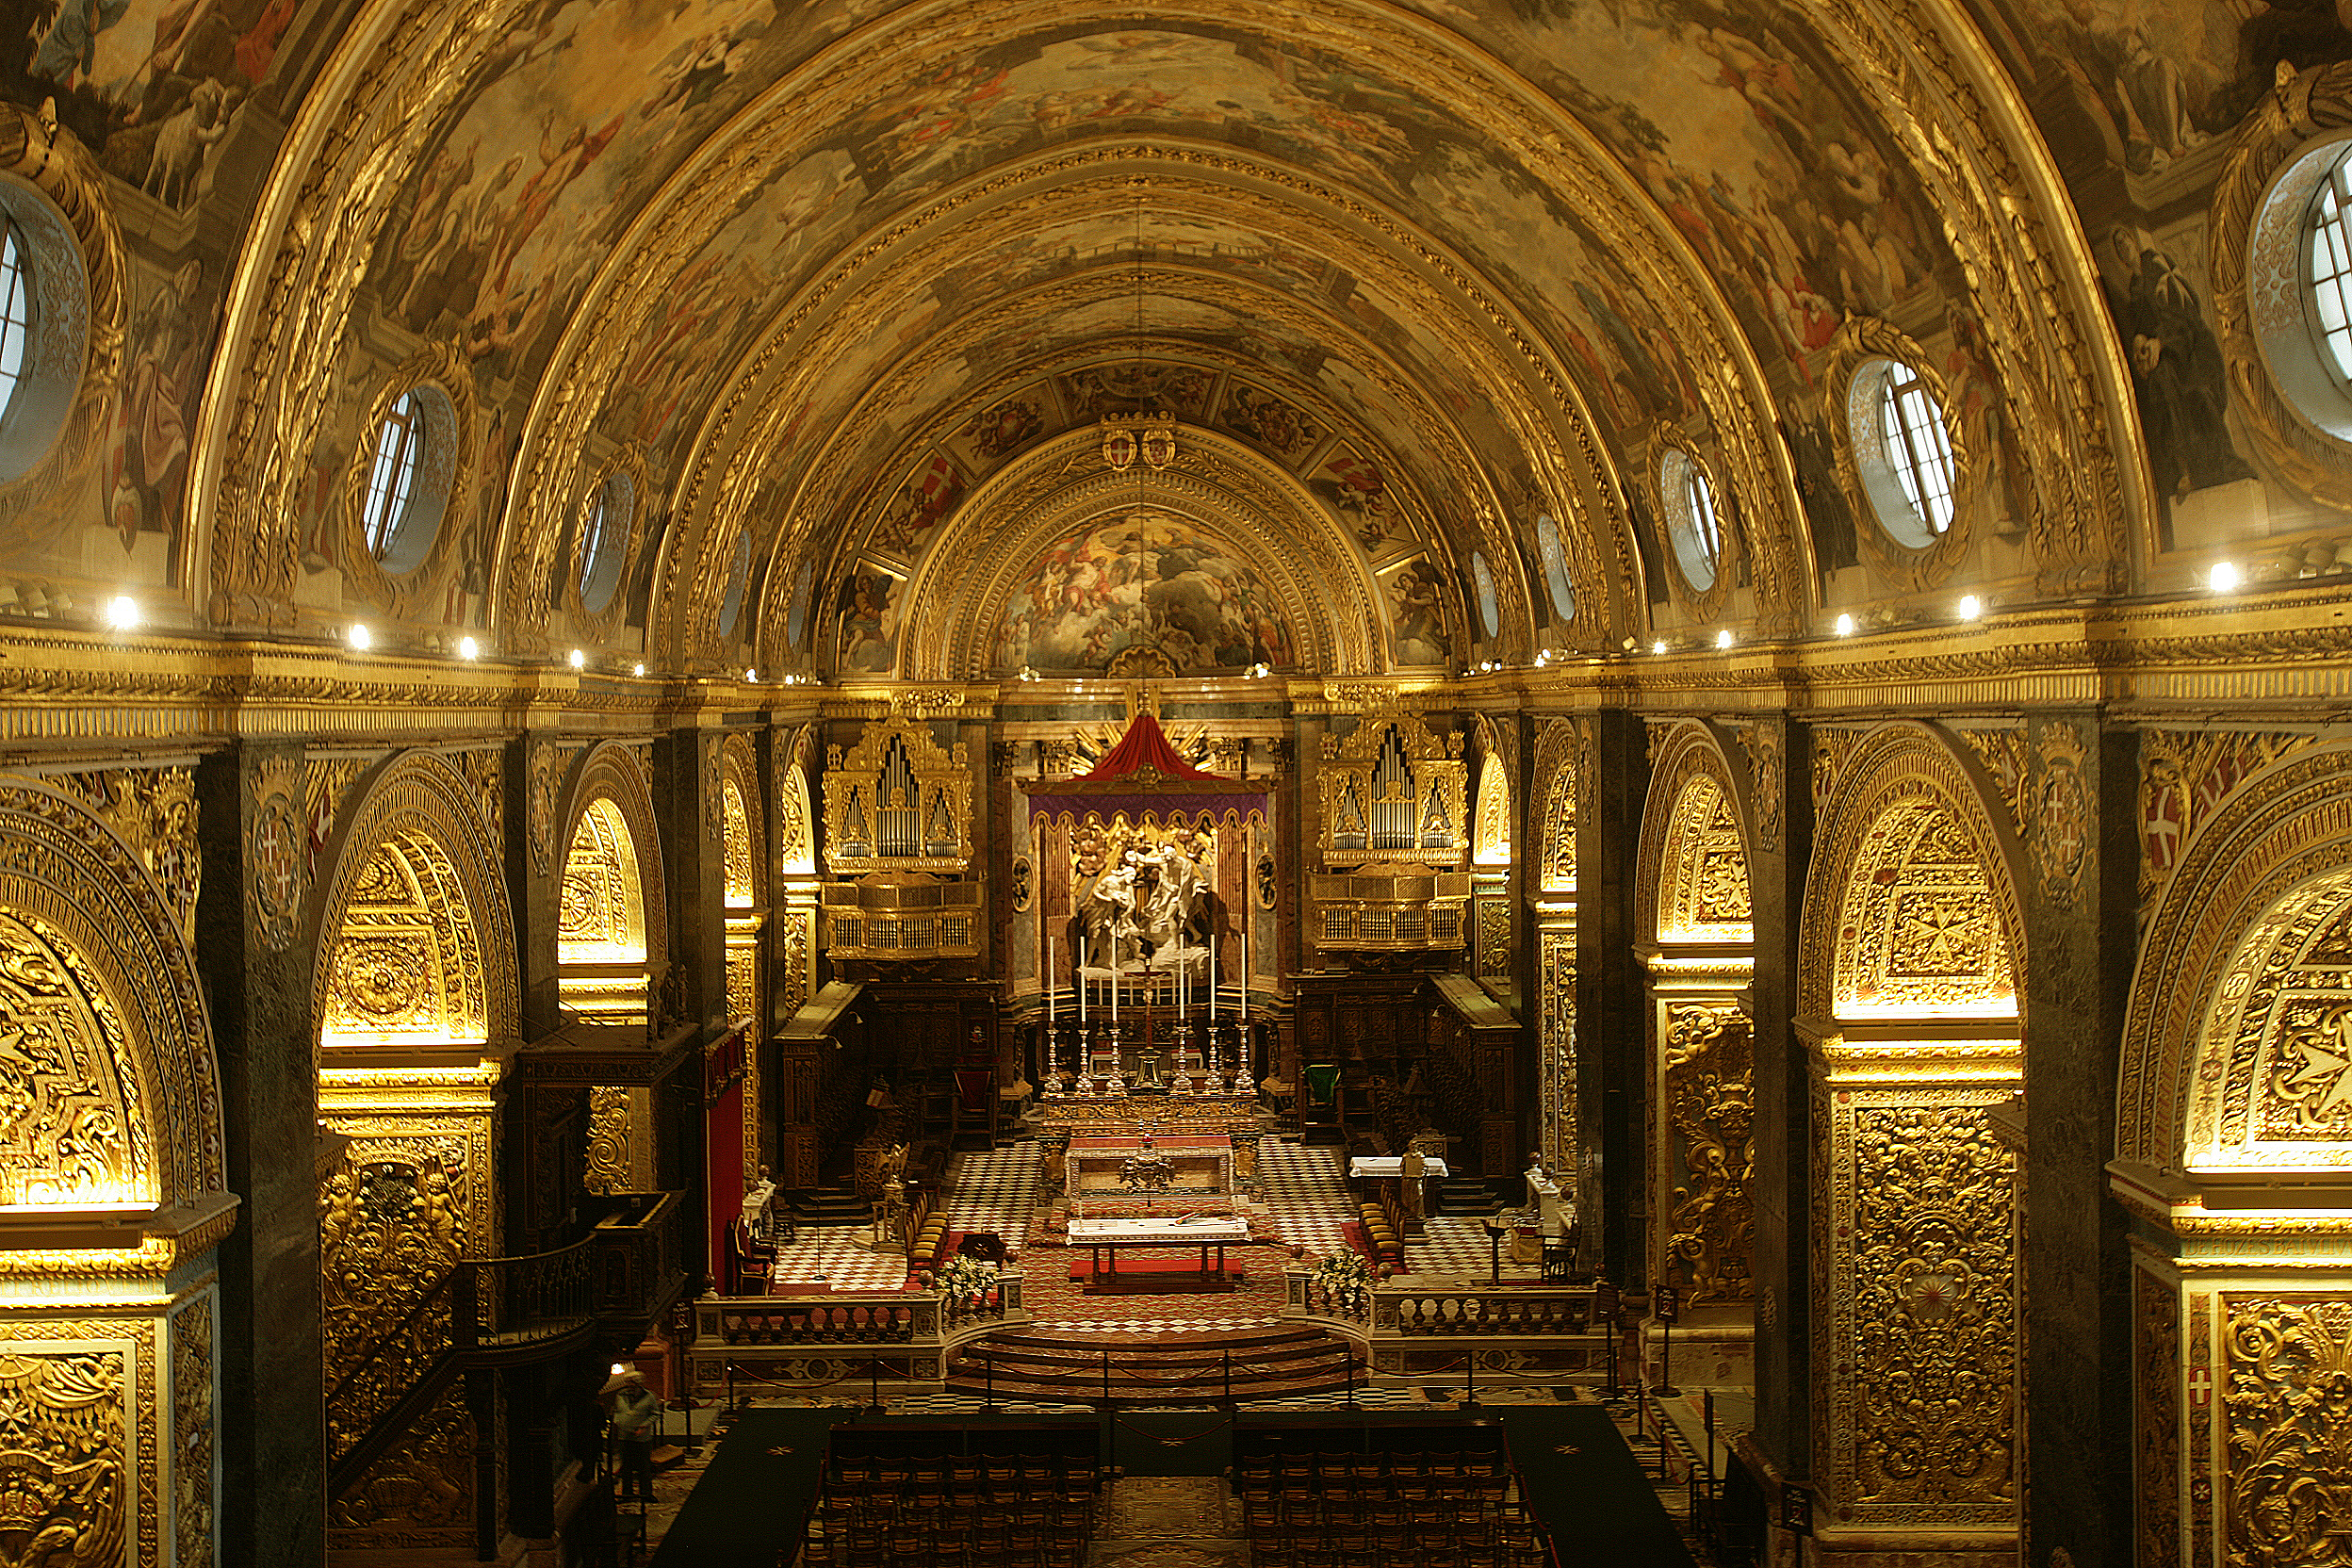 St_Johns_Co_Cathedral_Interior_15.JPG